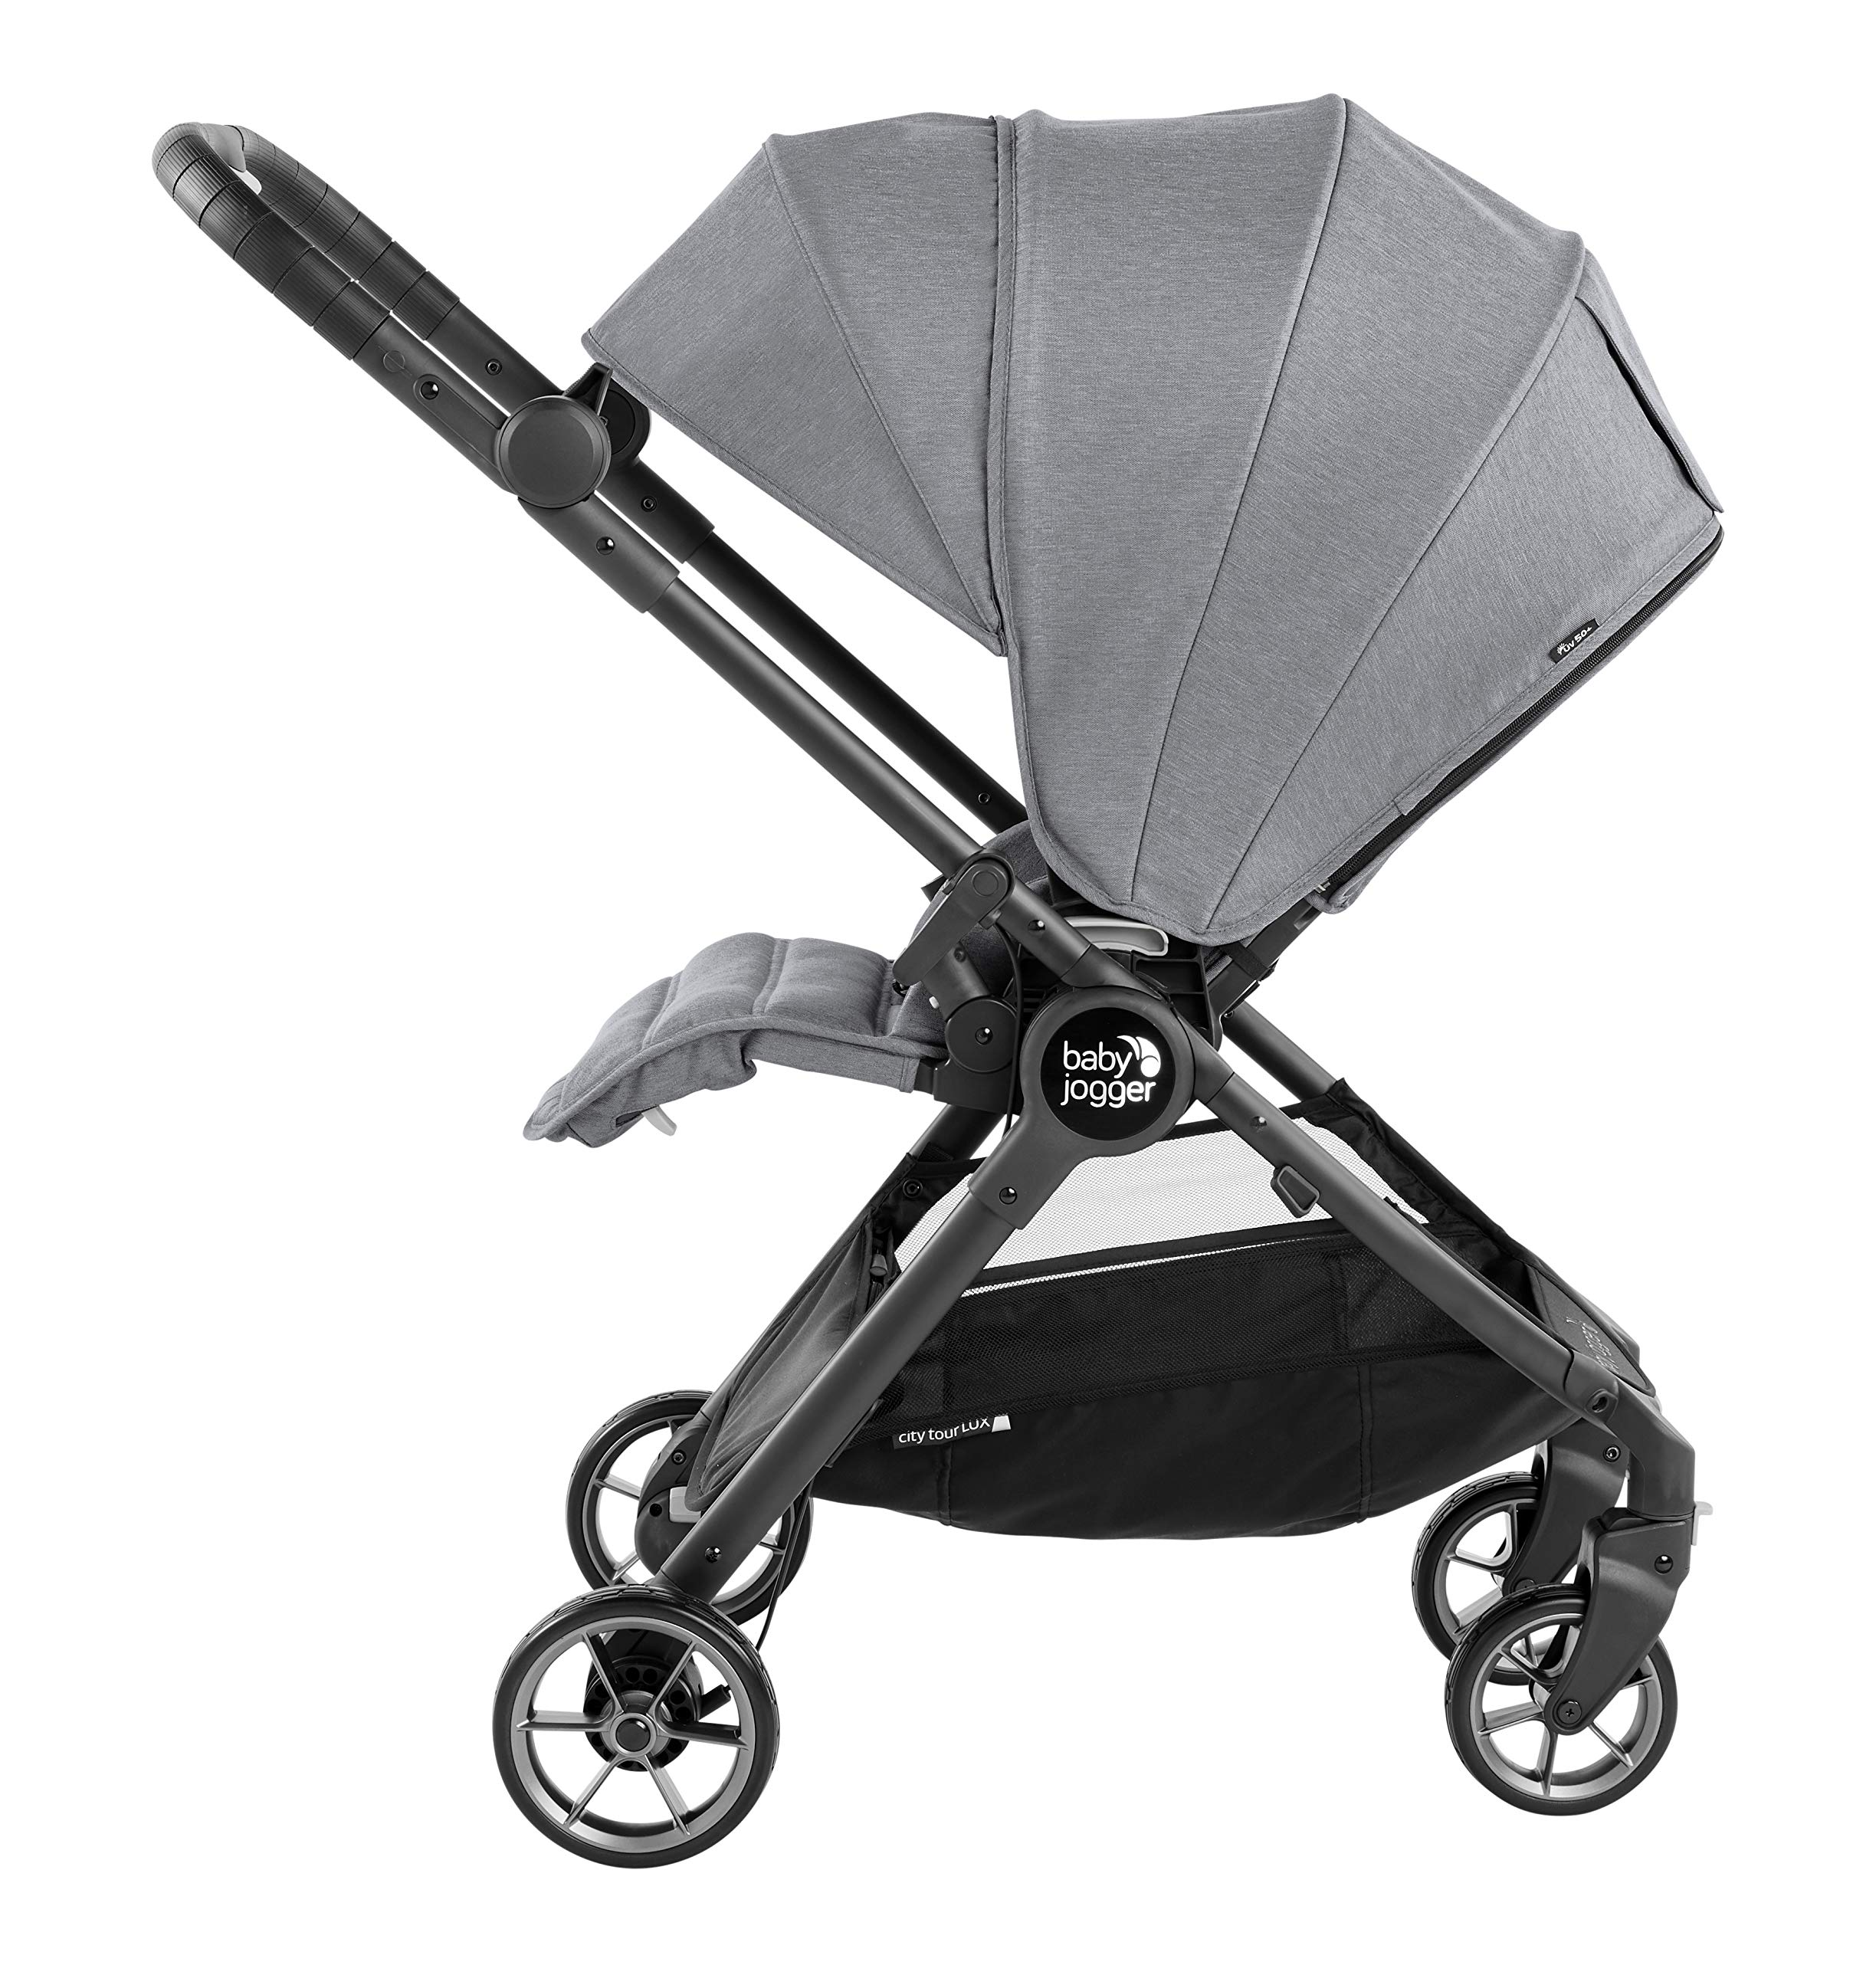 Baby Jogger City Tour LUX Compact Fold Reversible Stroller, Slate Baby Jogger The city tour lux and has a reversible from-birth seat unit for rear or forward travel Features an ultra-compact one hand fold and auto-lock when folded, allowing you to fold and go quickly. includes a carry bag and integrated carry strap a for easy transport With a flip flop friendly hand brake, lightweight and durable pu tyres and all wheel suspension to help keep mum and baby comfortable on many terrains 4